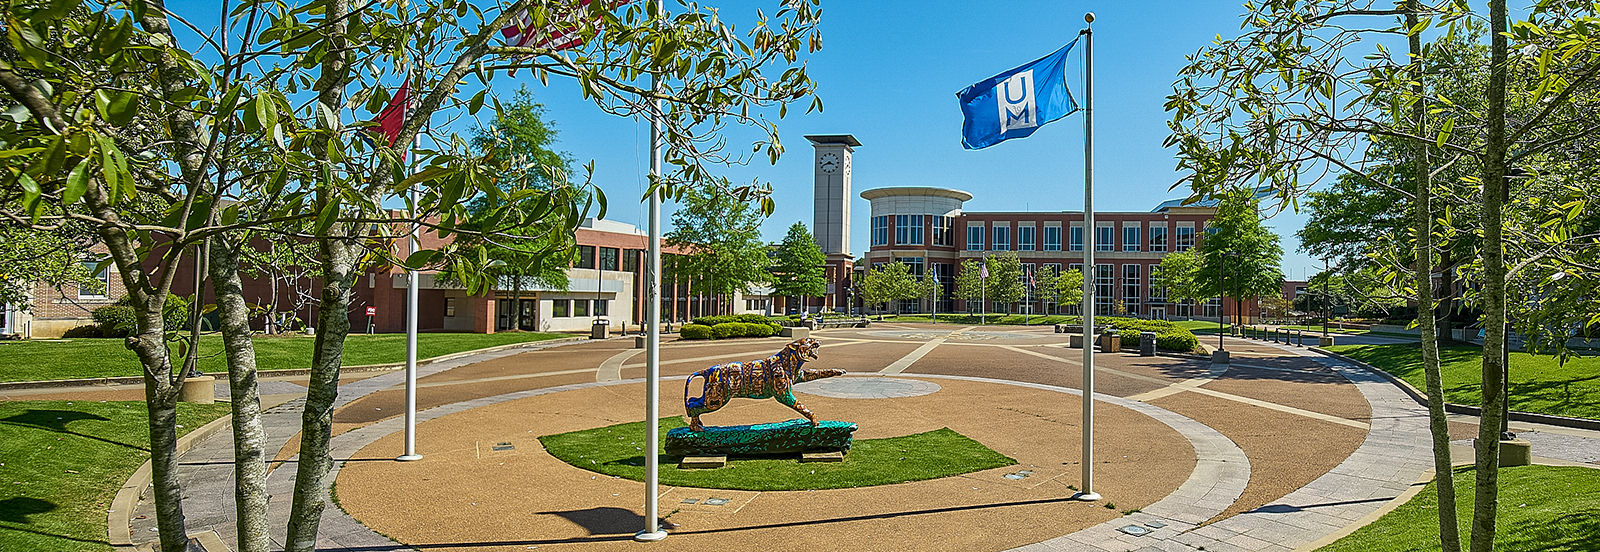 UofM Student Plaza with tiger statue, UofM flags and University Center in the background